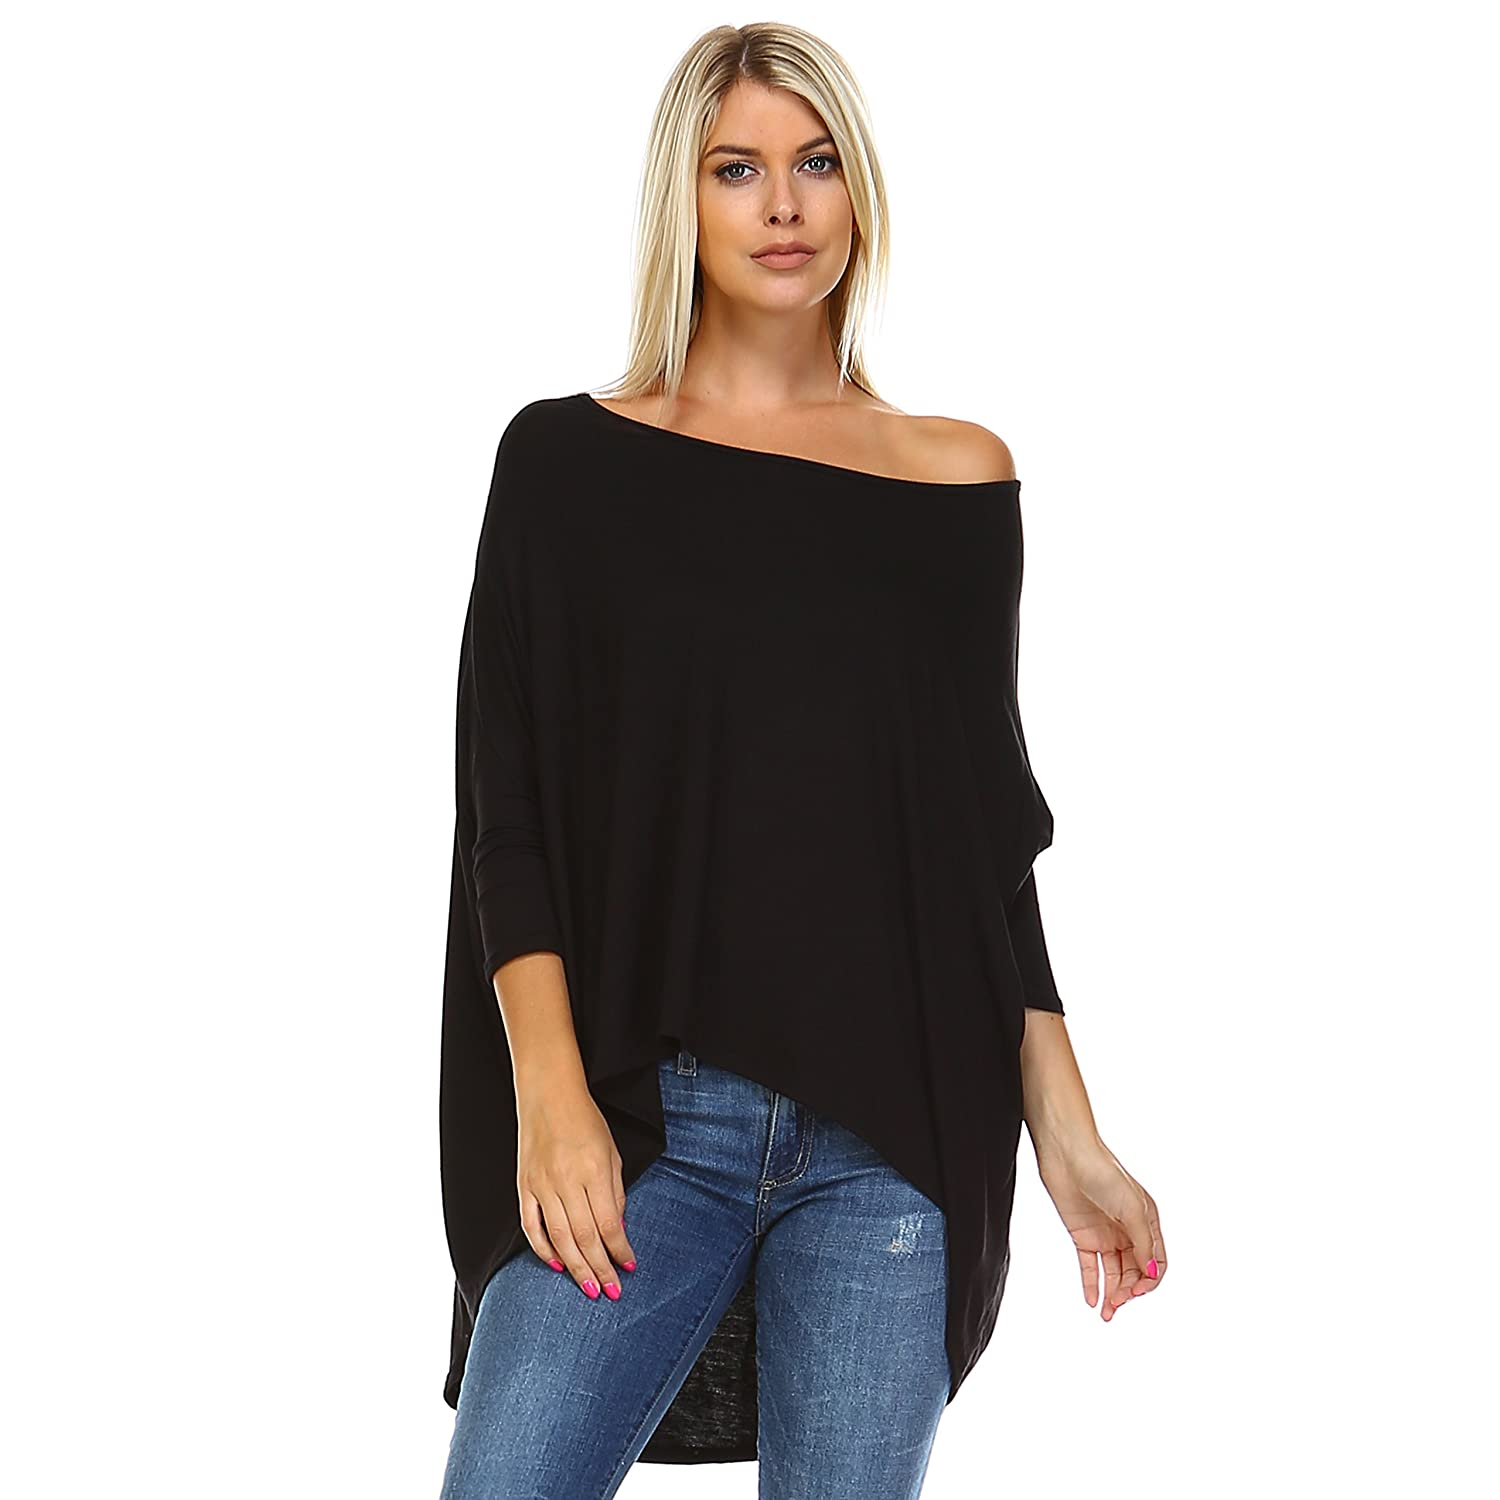 7d8af982324 GET THAT IRRESISTIBLE FEMININE LOOK: Perfect for everyday wear, this  fashionable, oversized batwing blouse top with asymmetrical hemline and off  shoulder ...